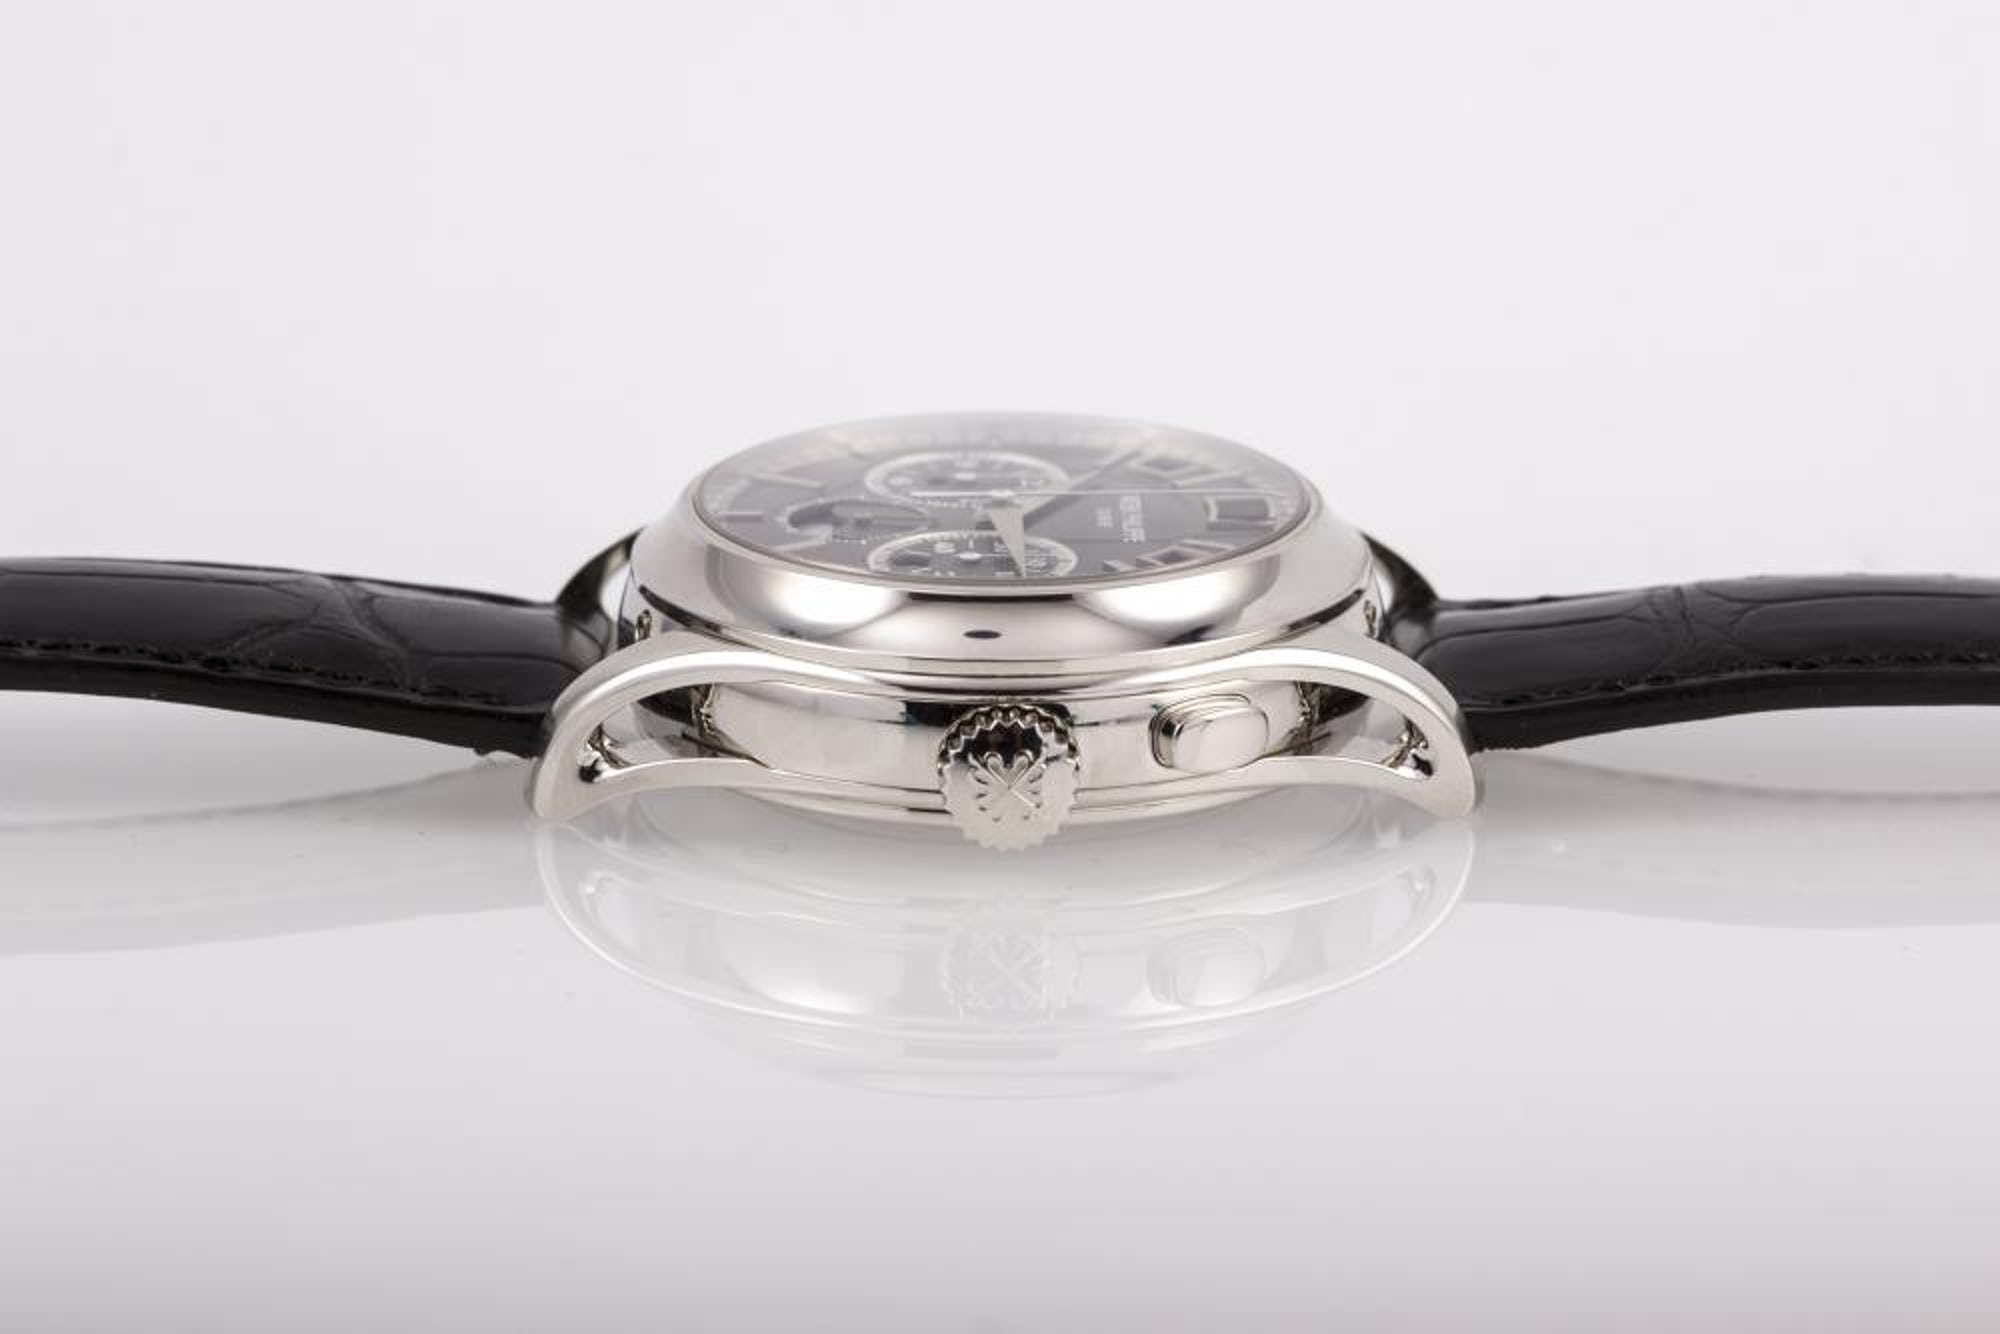 <p>The 5208 is a 42mm watch in platinum with pierced lugs.</p>